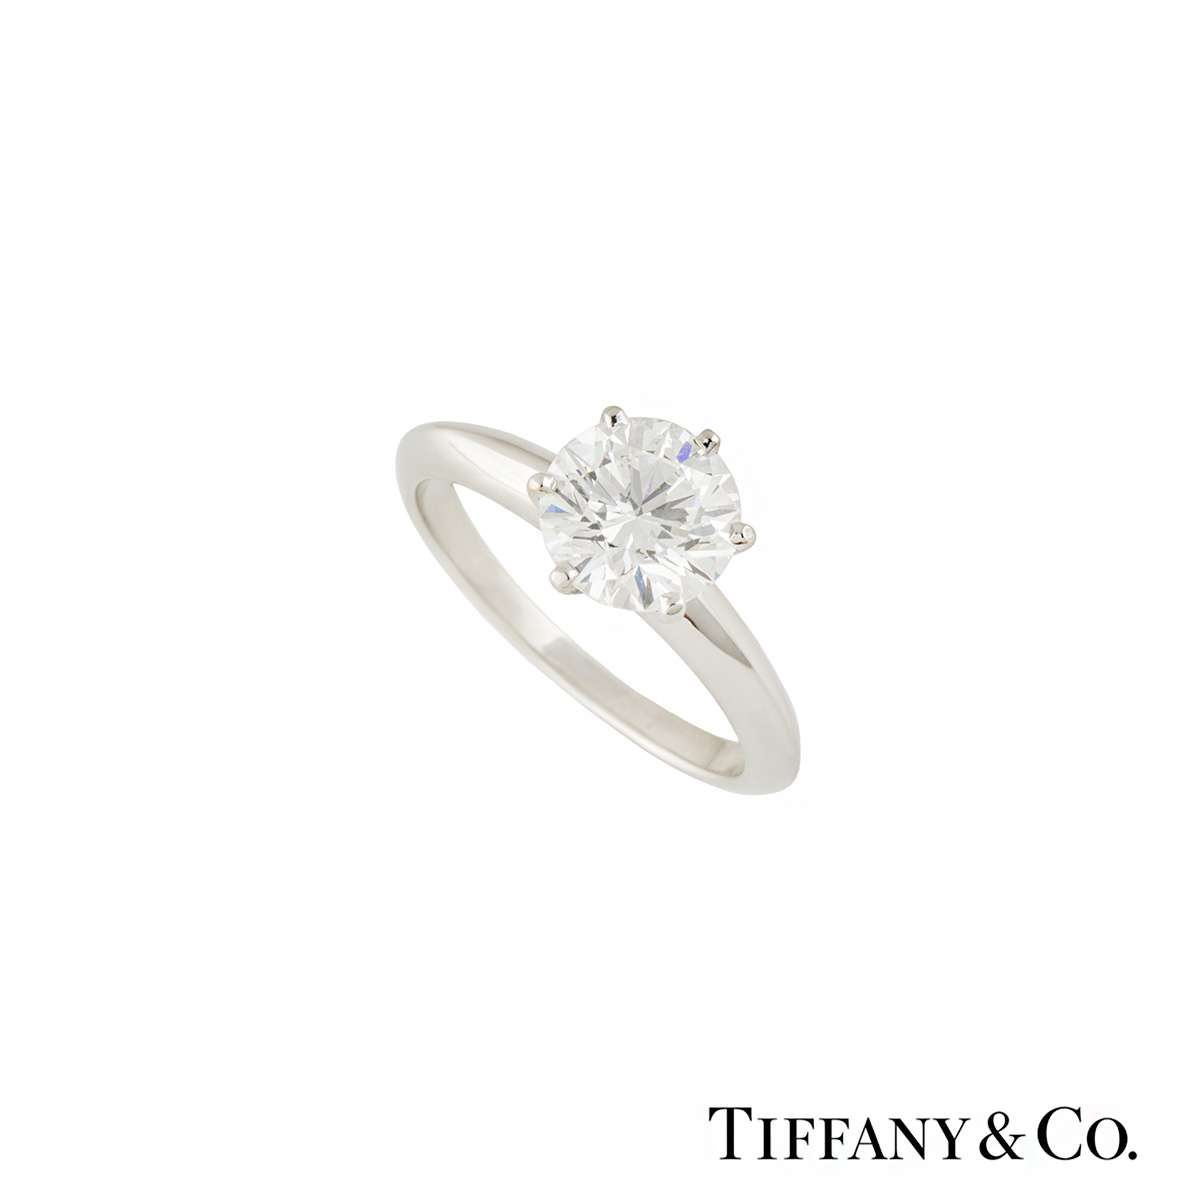 Tiffany & Co. Platinum Diamond Setting Ring 1.70ct I/VS1 XXX